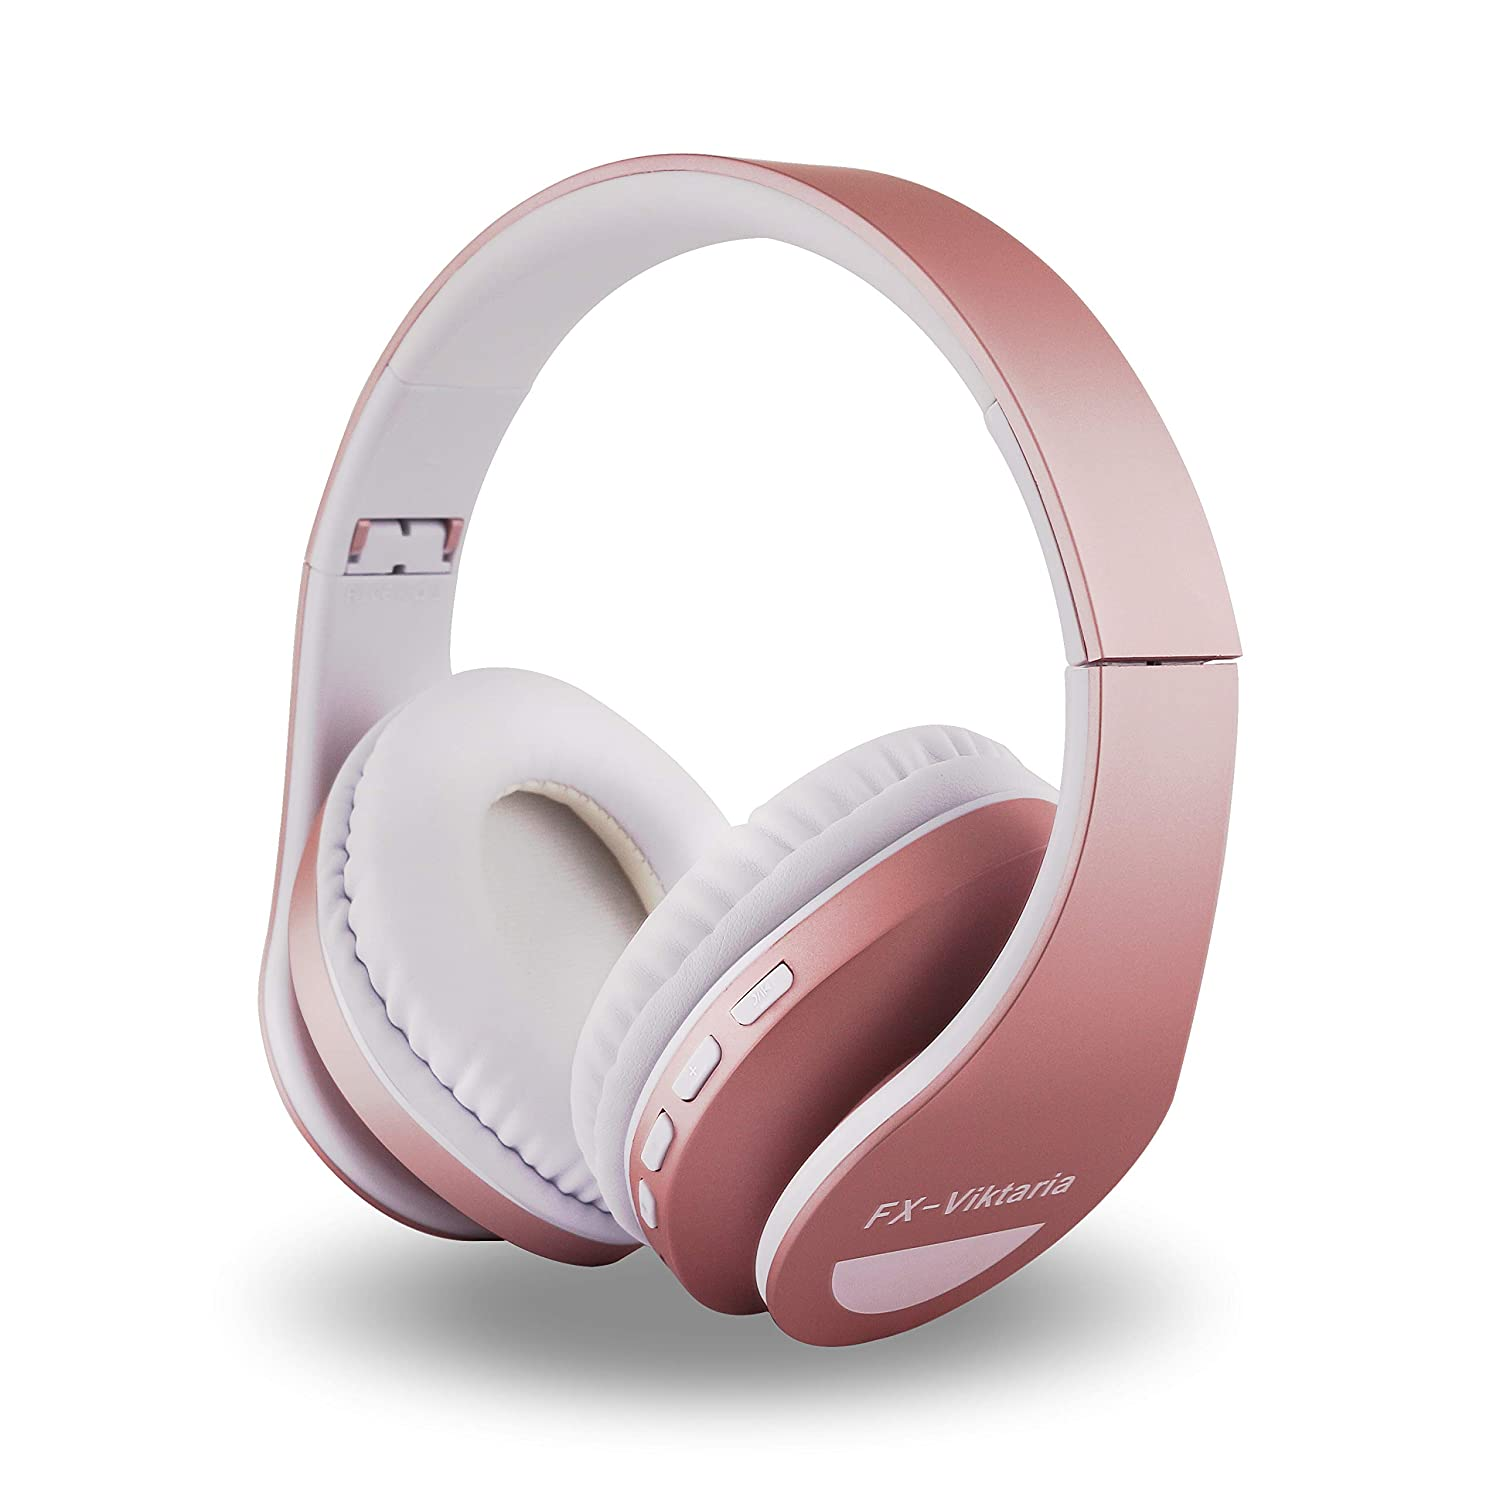 FX-Viktaria Over Ear Headphones, Headset with Microphone, Foldable and Lightweight, Support TF Card, USB Charging Headset, MP3 Mode and FM Radio for Cellphones, Laptop (Pink-with-Blue)